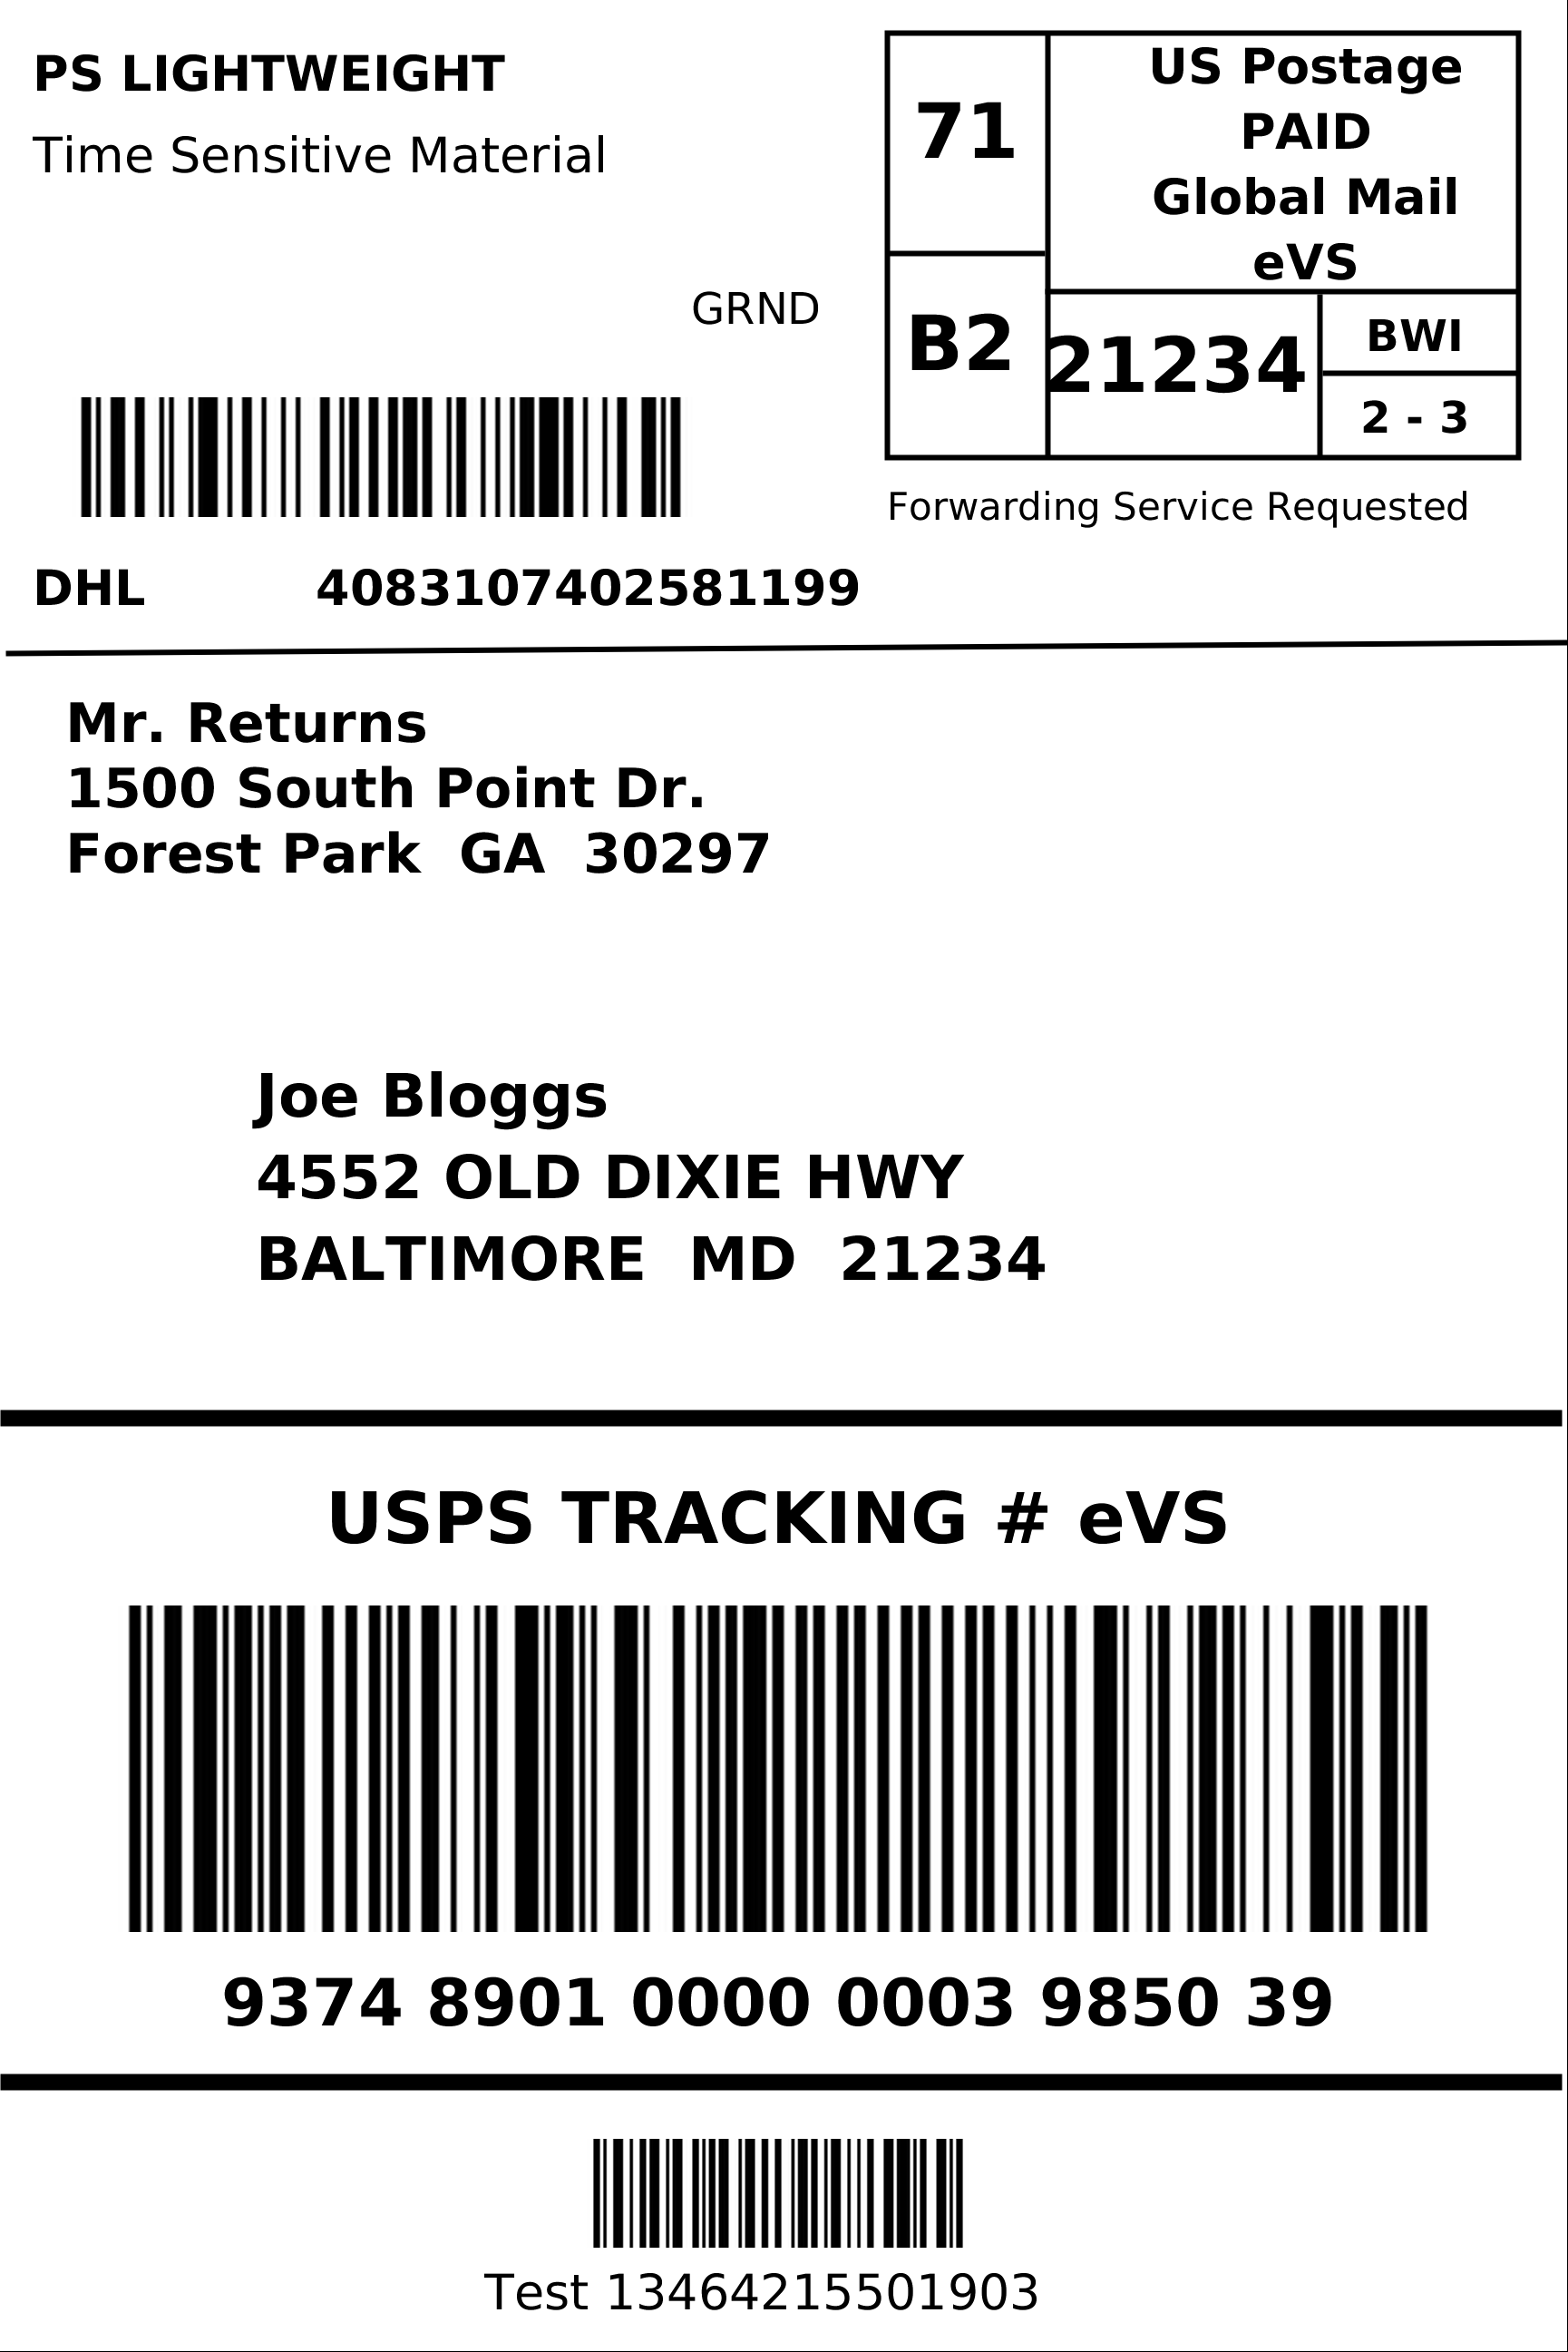 DHL eCommerce - Generate a Shipping Label